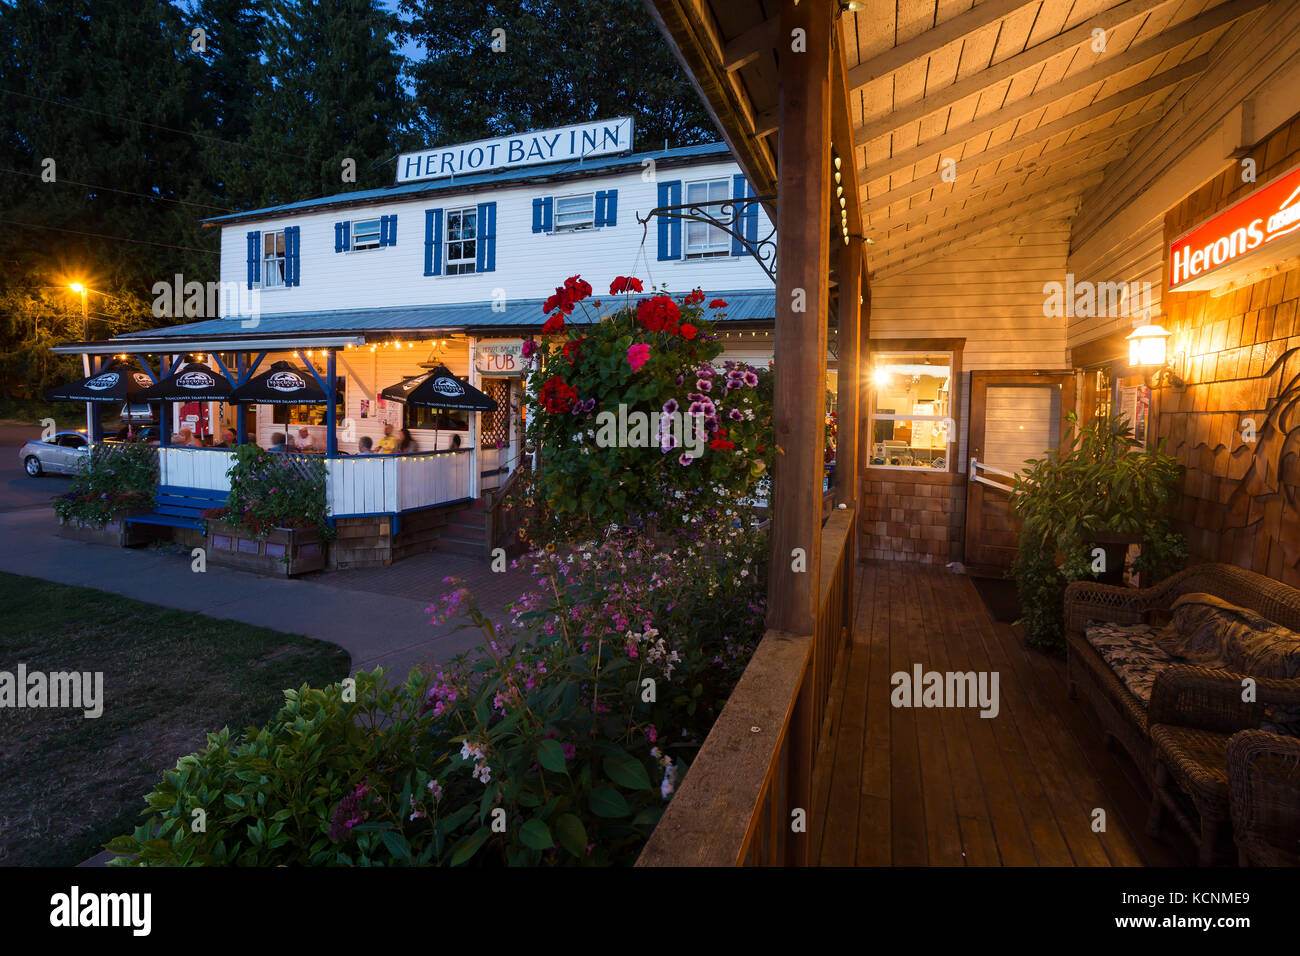 The well known Heriot Bay Inn on Quadra Island is a popular pub for locals and visitors alike visiting the Discovery - Stock Image